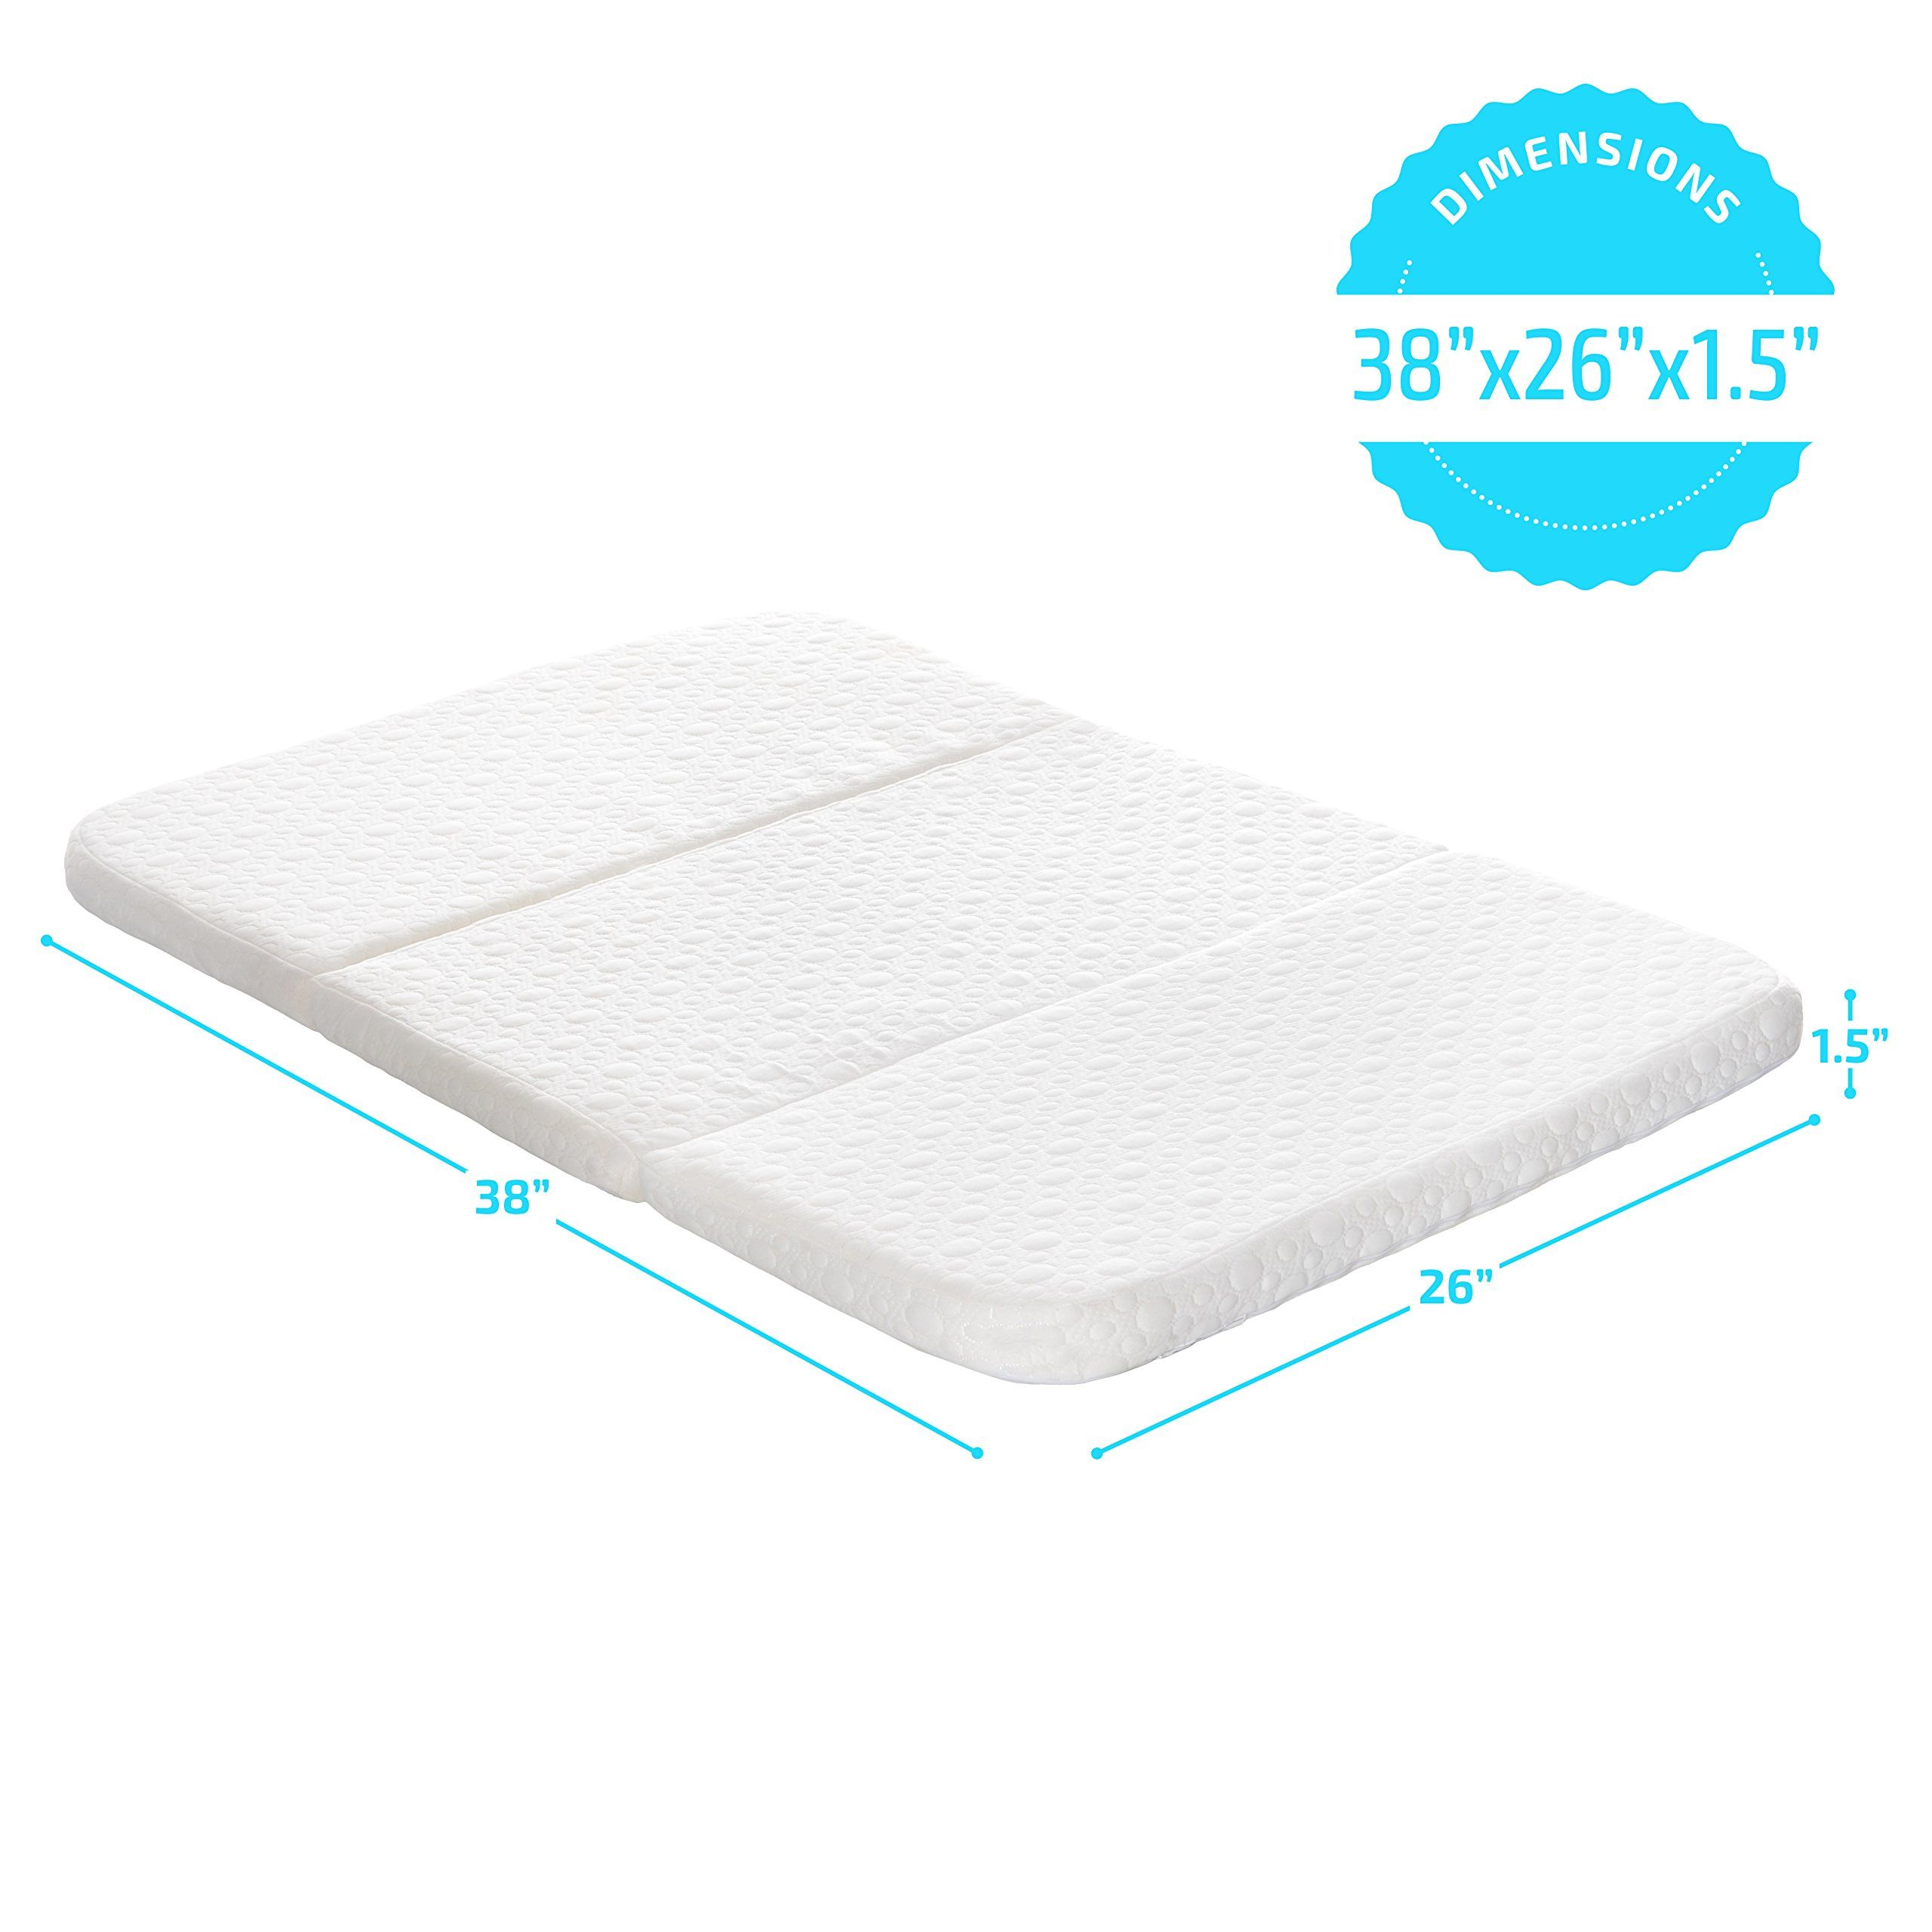 Milliard Pack And Play Mattress Conveniently Folds Into Bonus